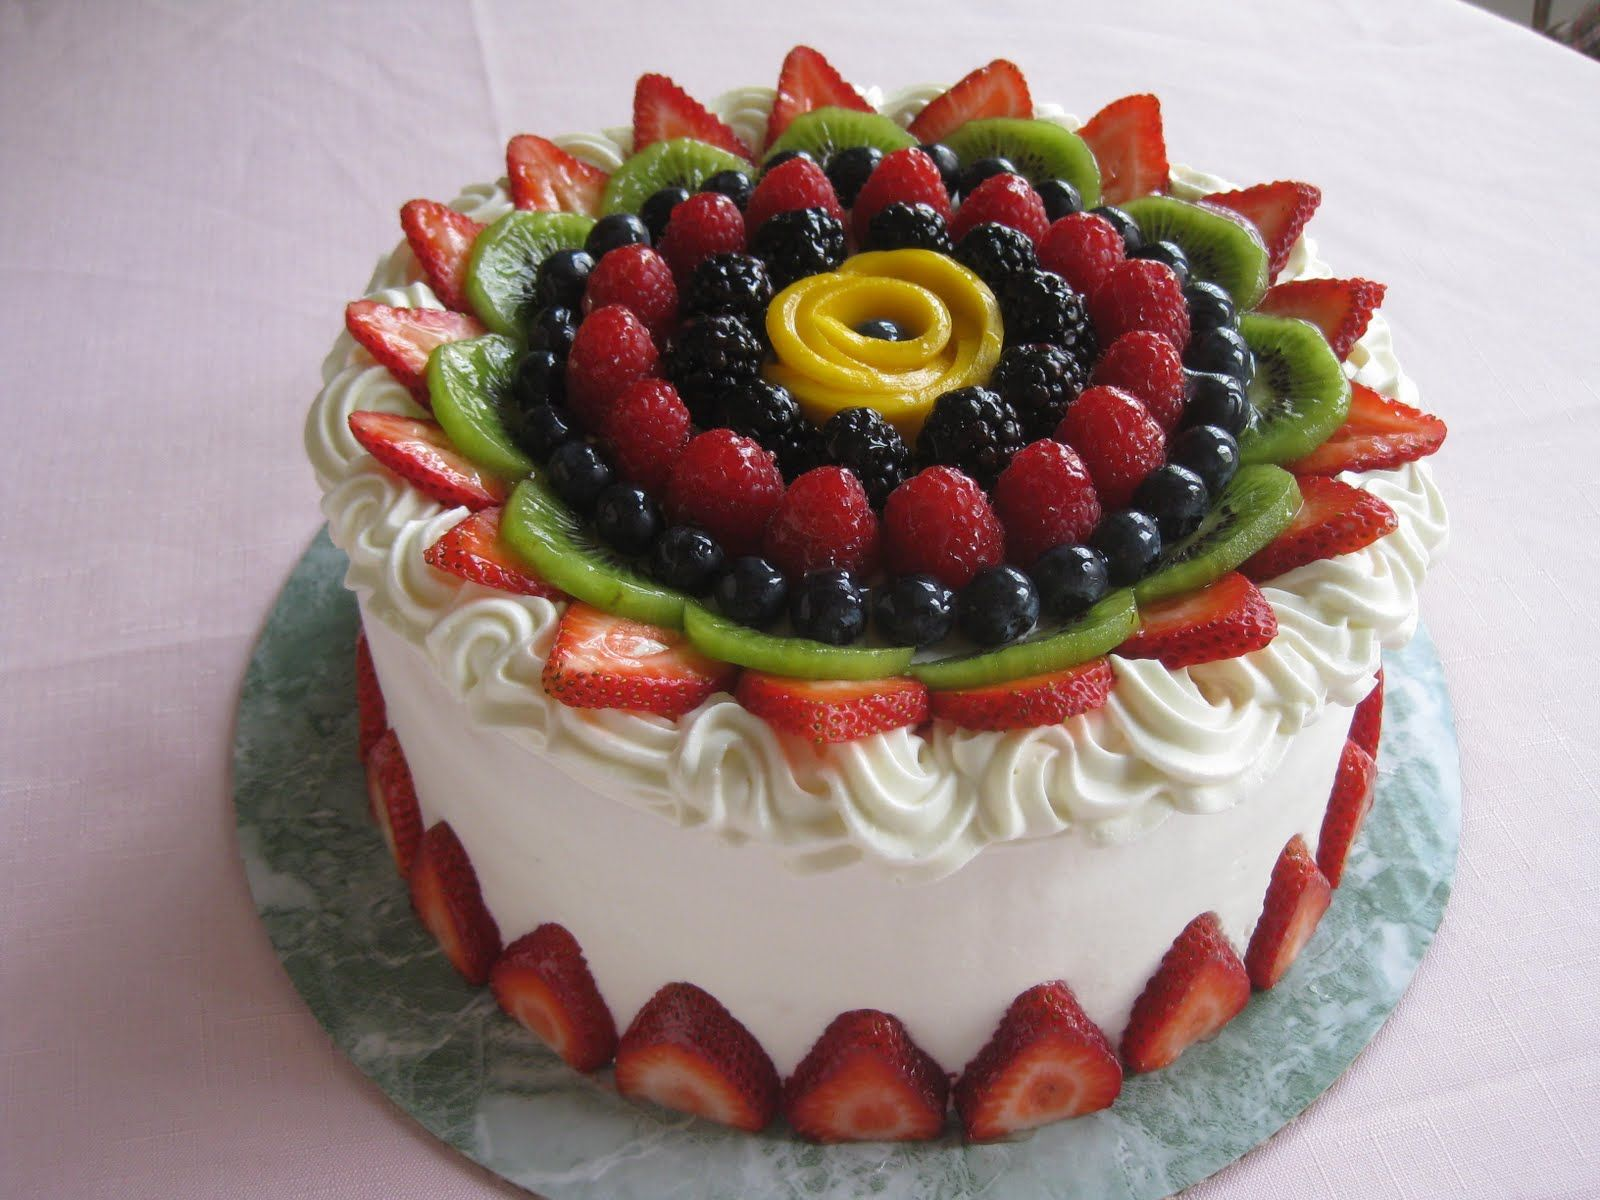 How to mature a fruit cake quickly